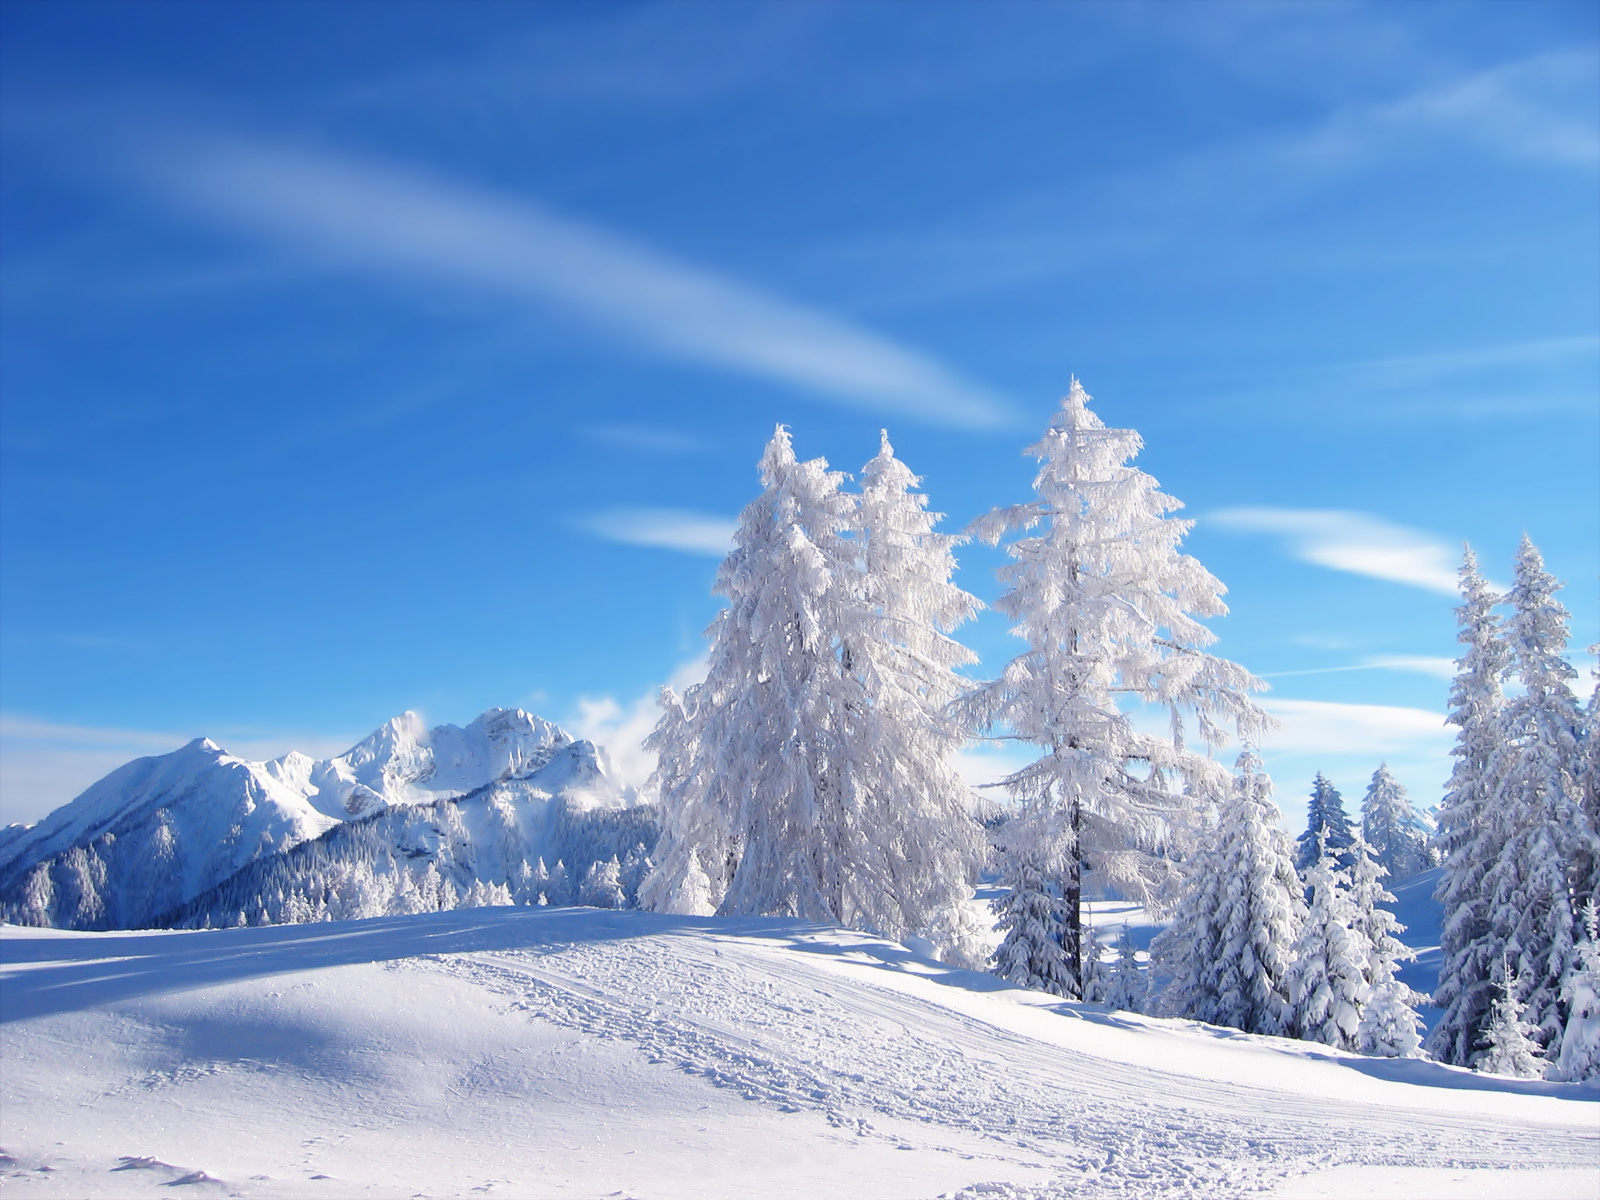 1600x1200 Winter desktop PC and Mac wallpaper 1600x1200